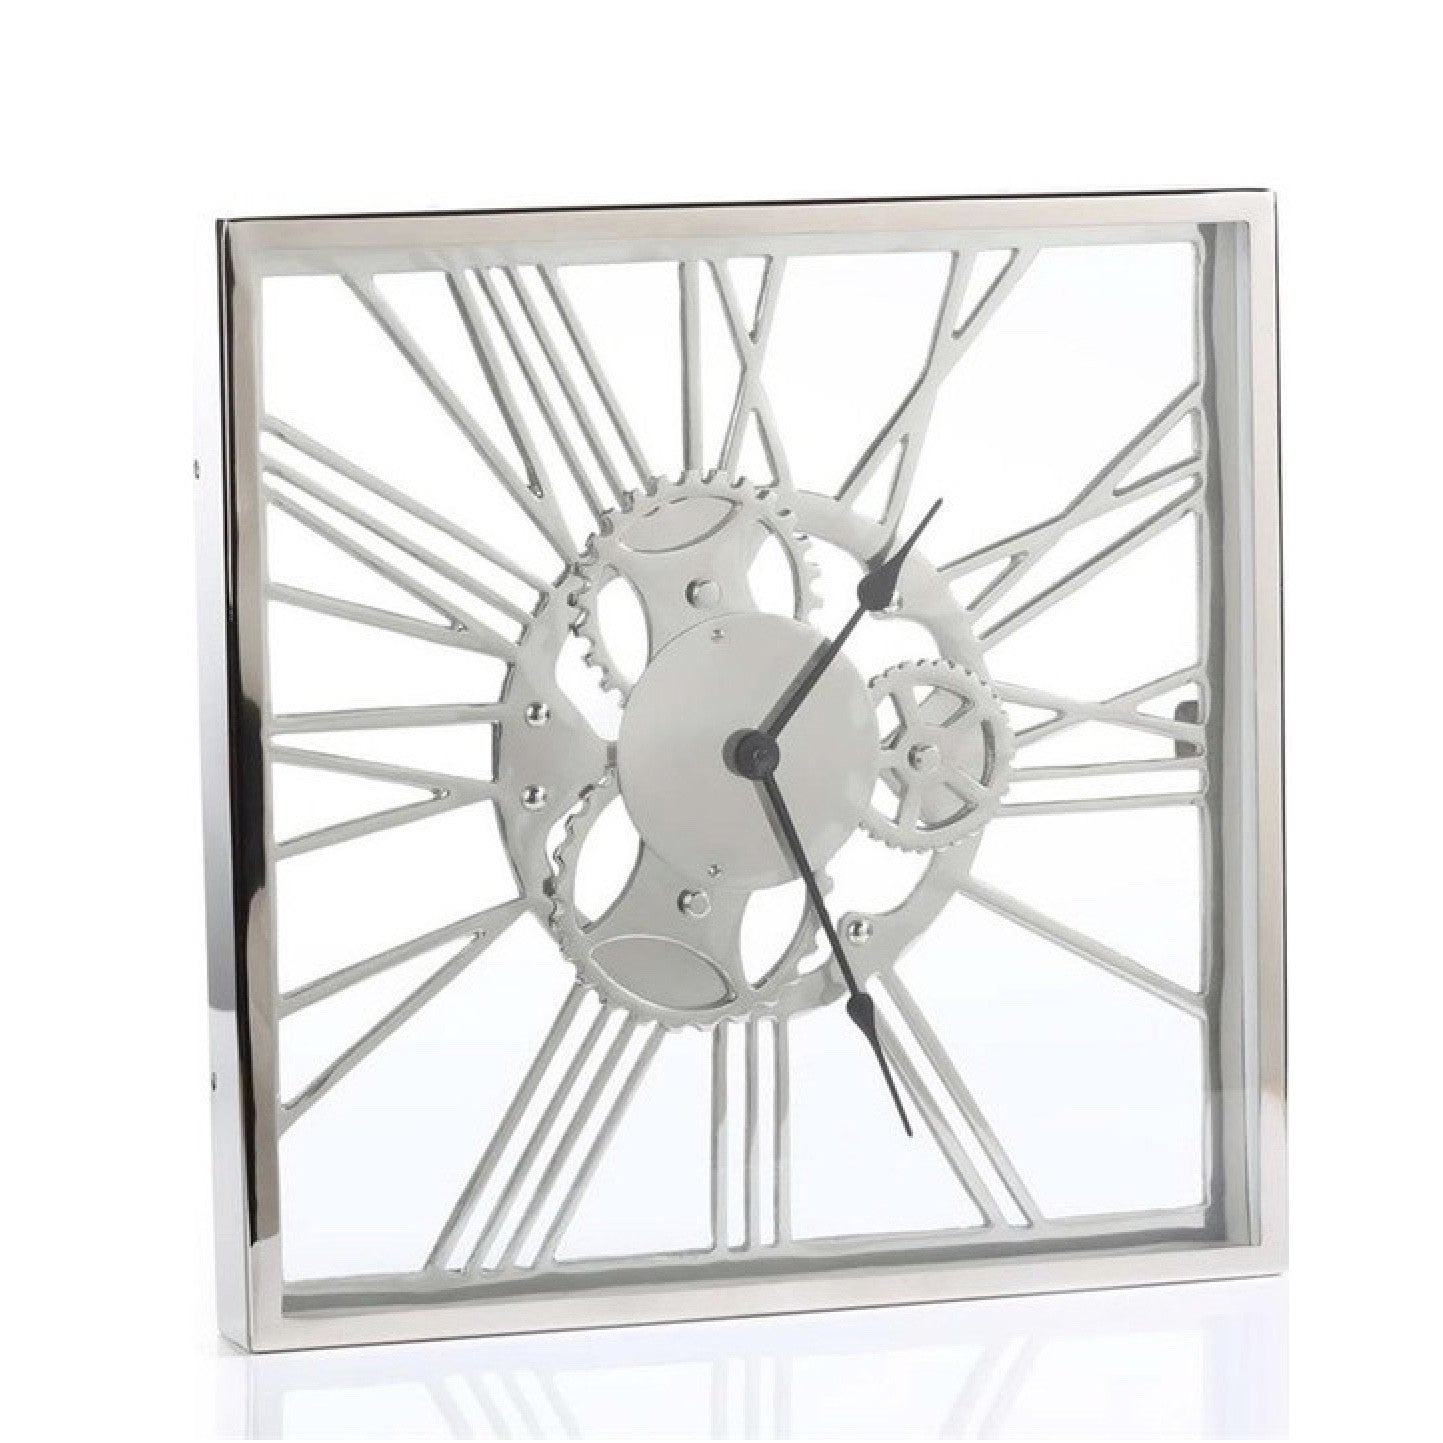 Zodax Regatta Polished Nickel Clock, ZX-Zodax, Putti Fine Furnishings